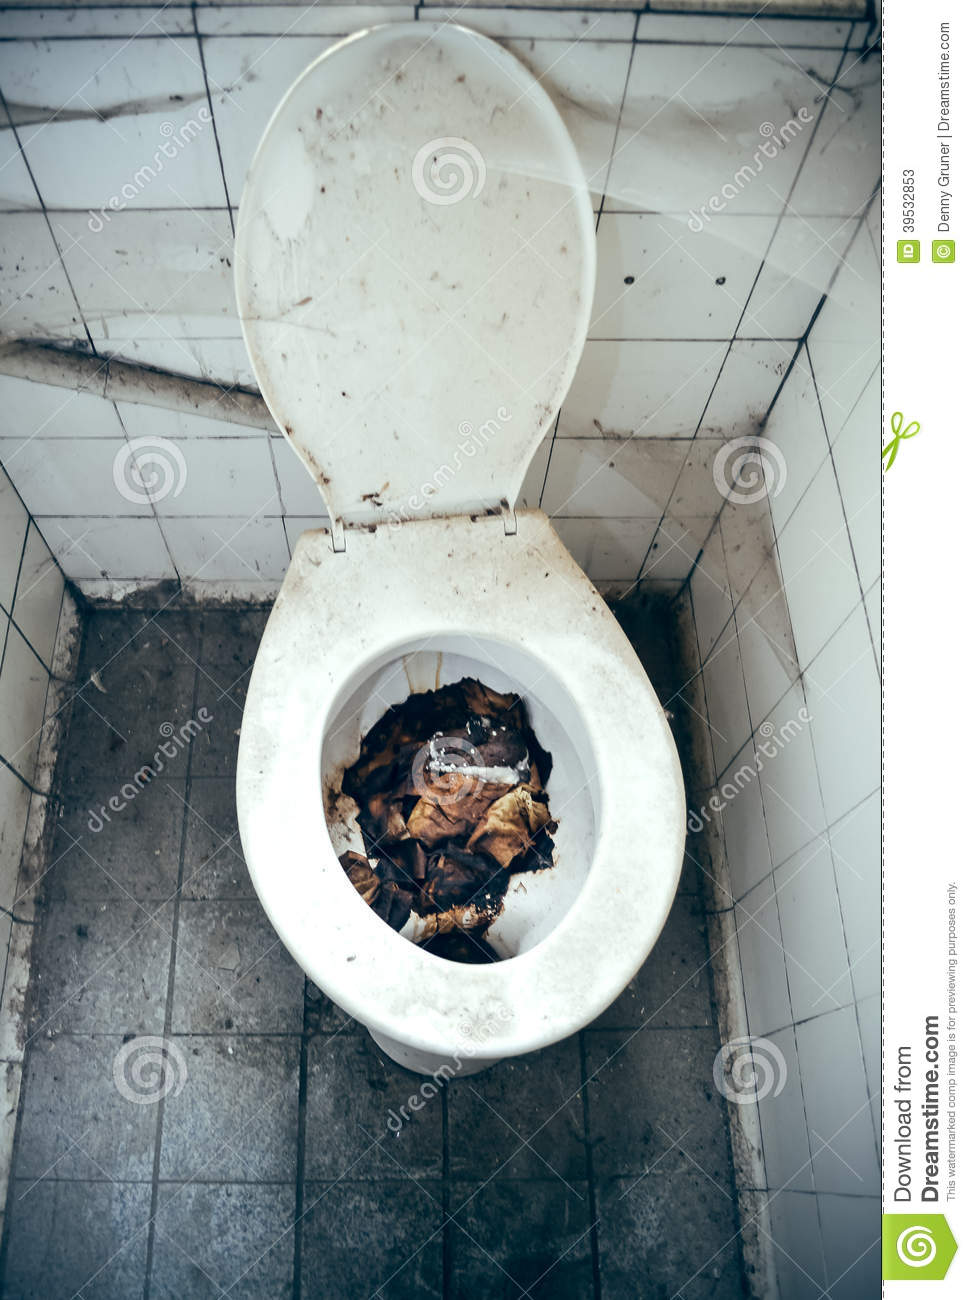 An old nasty clogged toilet with holding remains.